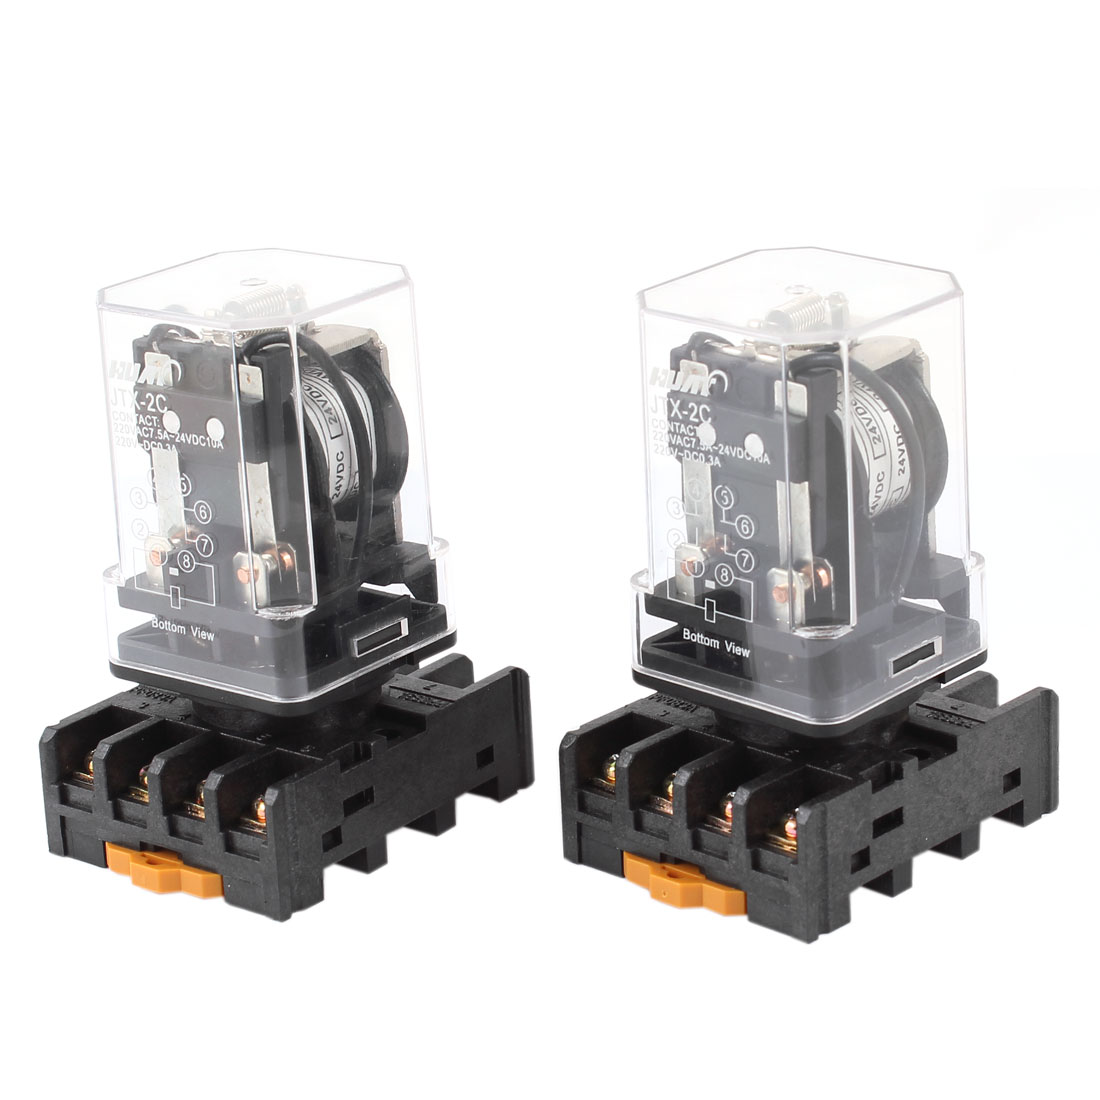 2 Pieces JTX-2C DC 24V 8 Pins DPDT Coil Power Relay w 35mm DIN Rail Socket